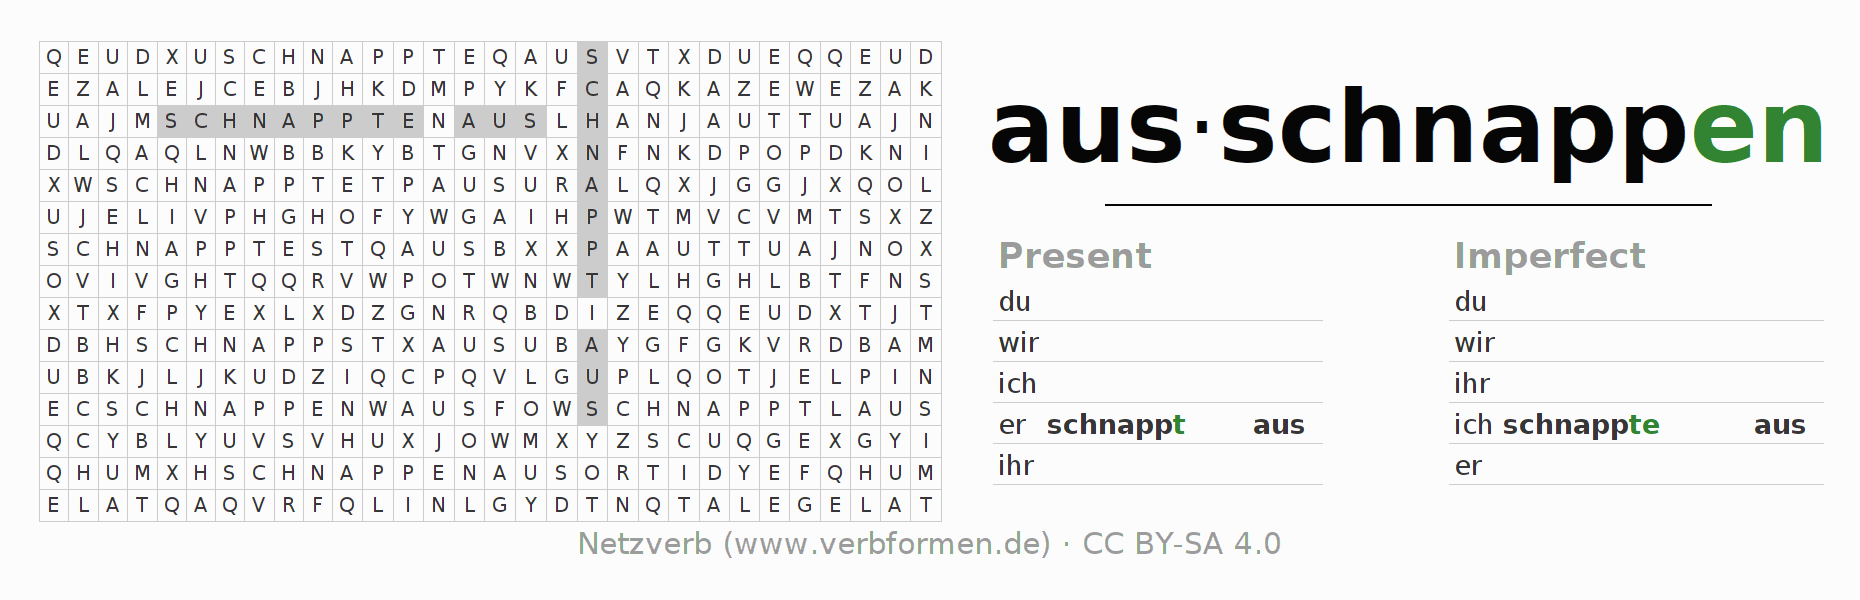 Word search puzzle for the conjugation of the verb ausschnappen